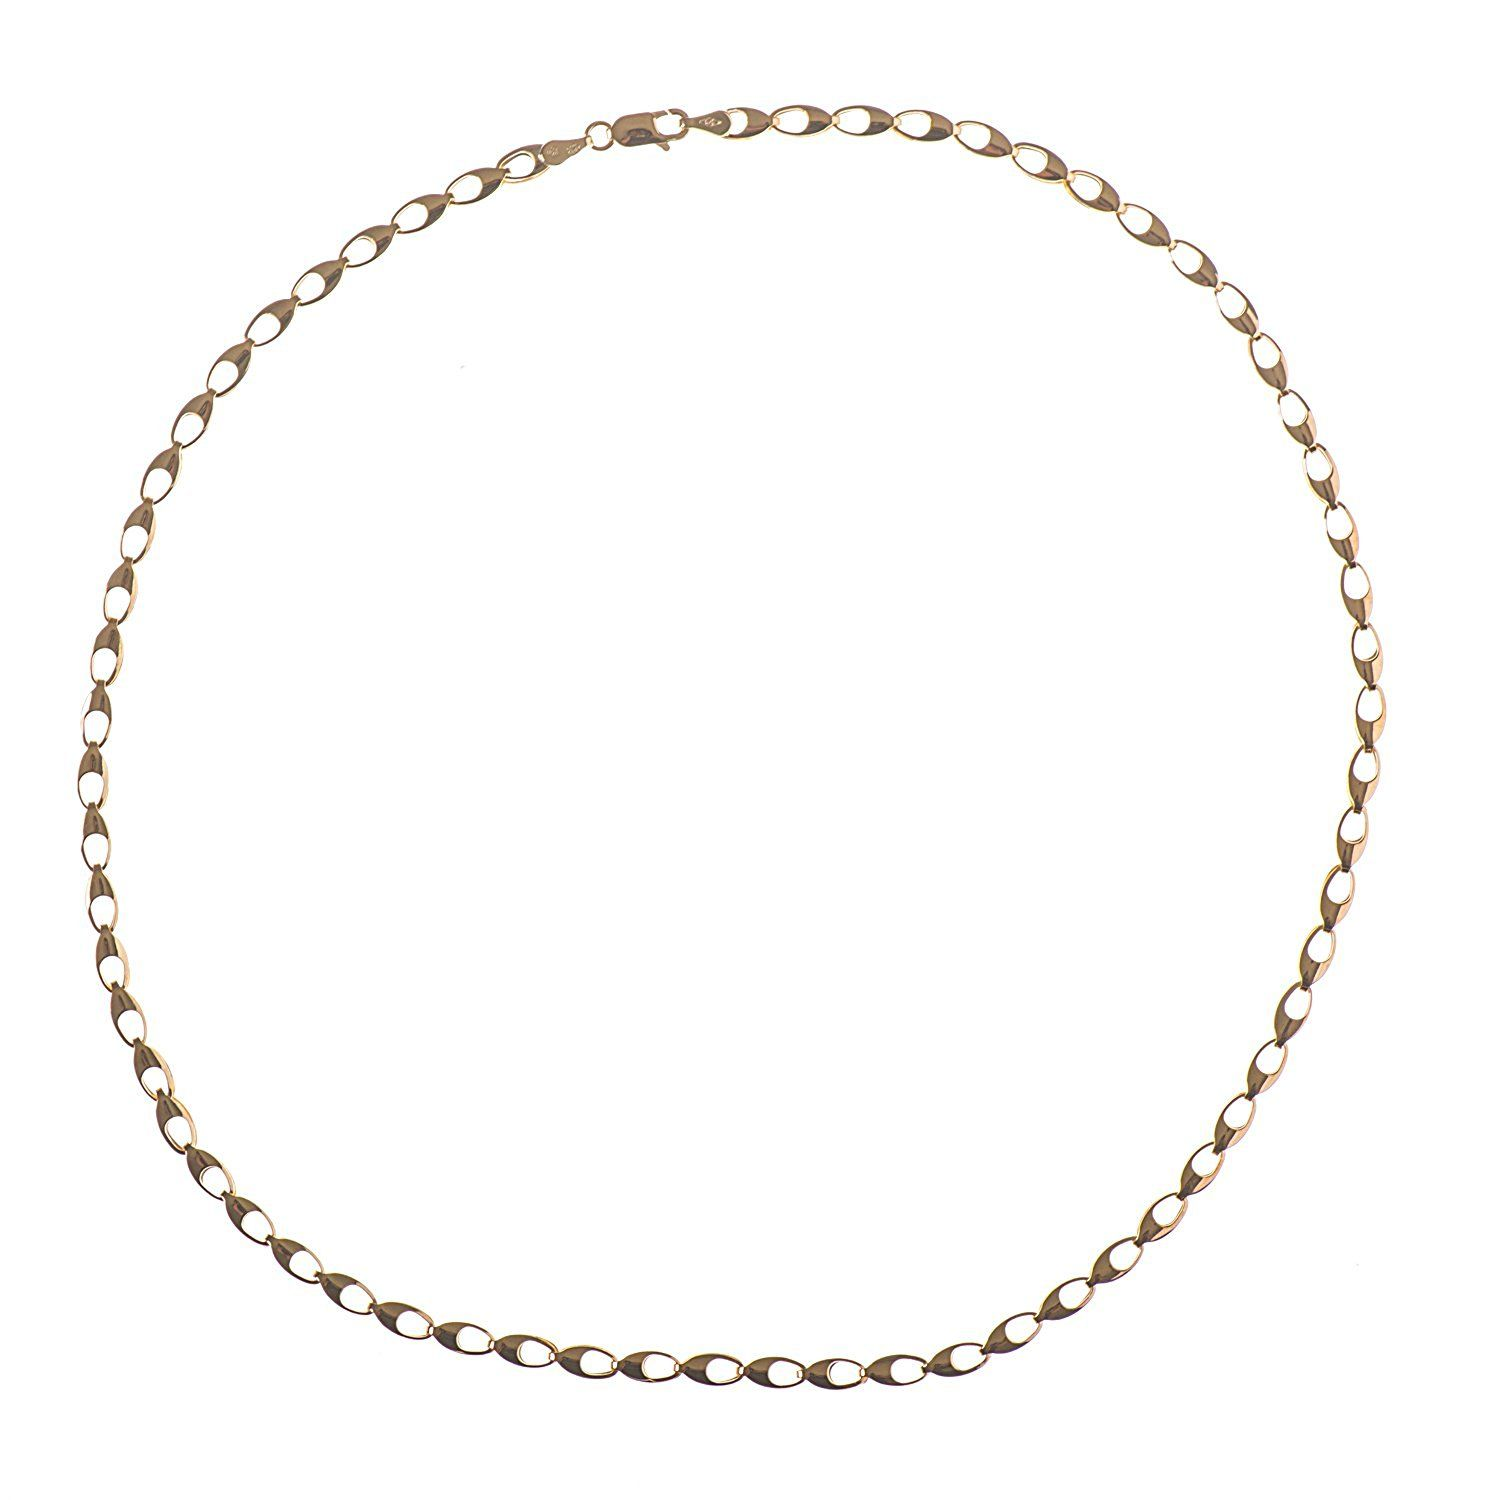 Adara 9 ct Yellow Gold Hollow Curb Chain of Length 45.72 cm OvmC9ep5